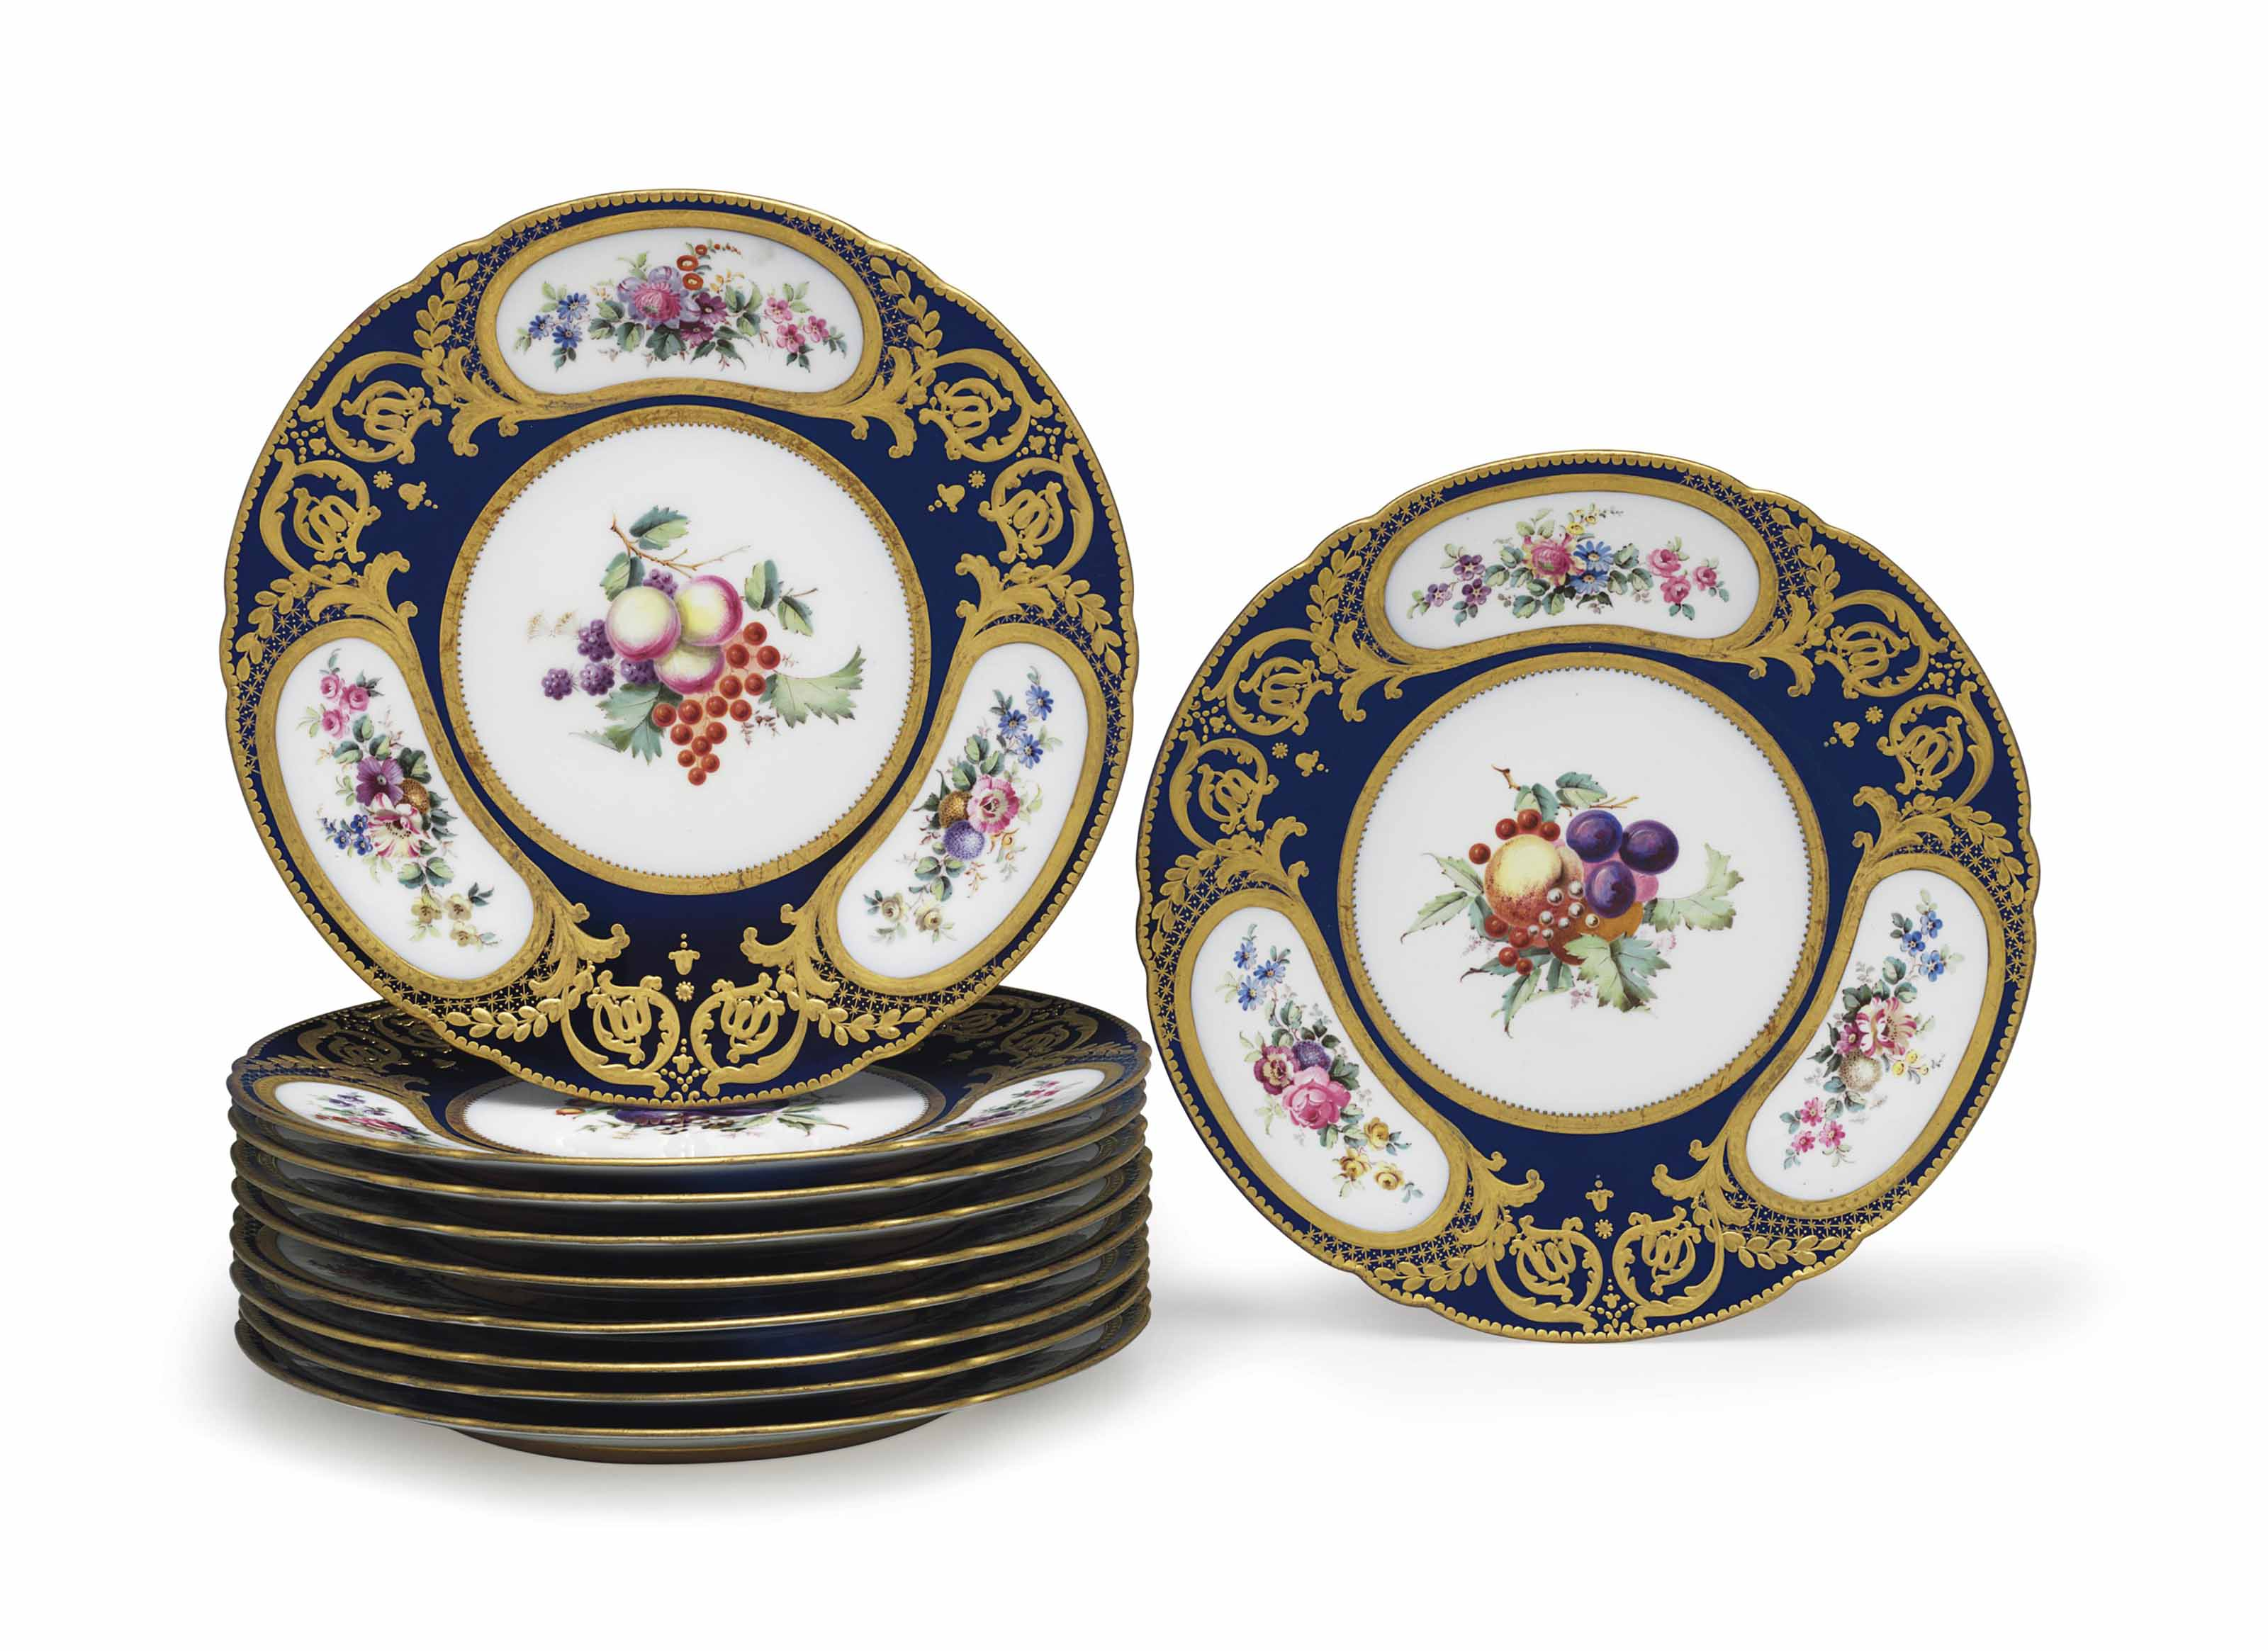 TEN COPELANDS PORCELAIN COBALT-BLUE GROUND PLATES